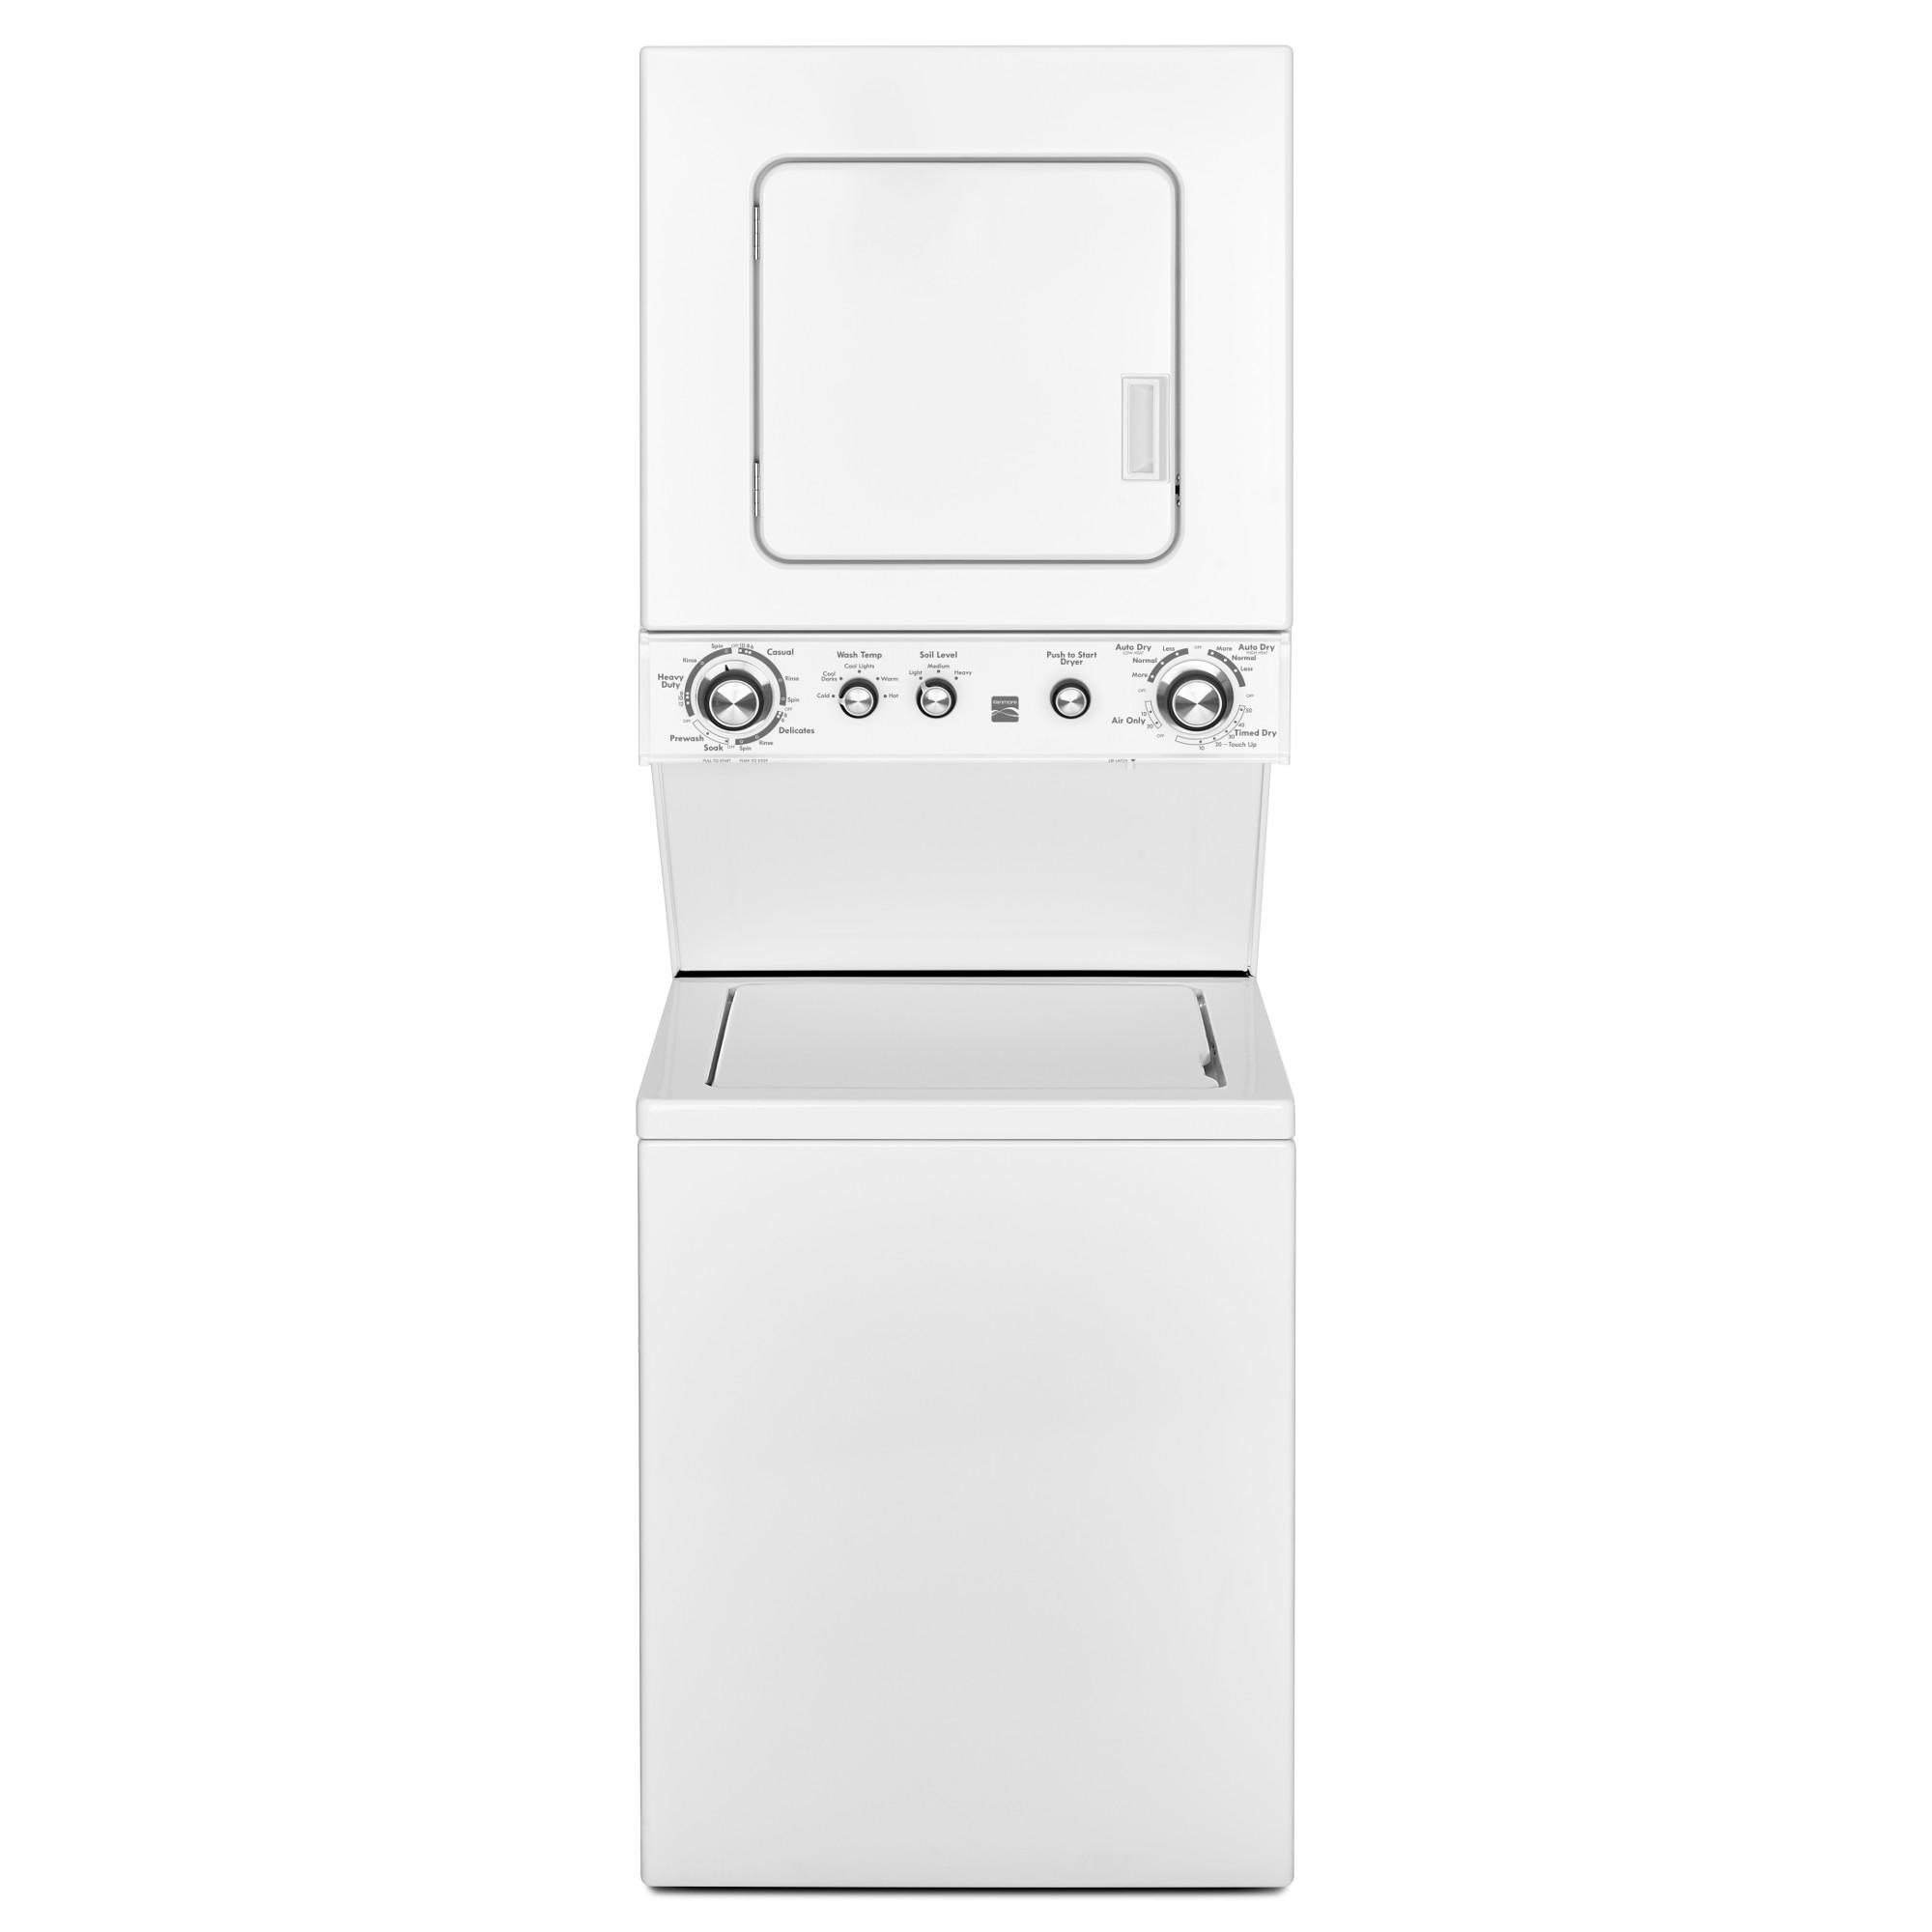 81432-24-%C2%A03-8-cu-ft-Electric-Laundry-Center-White